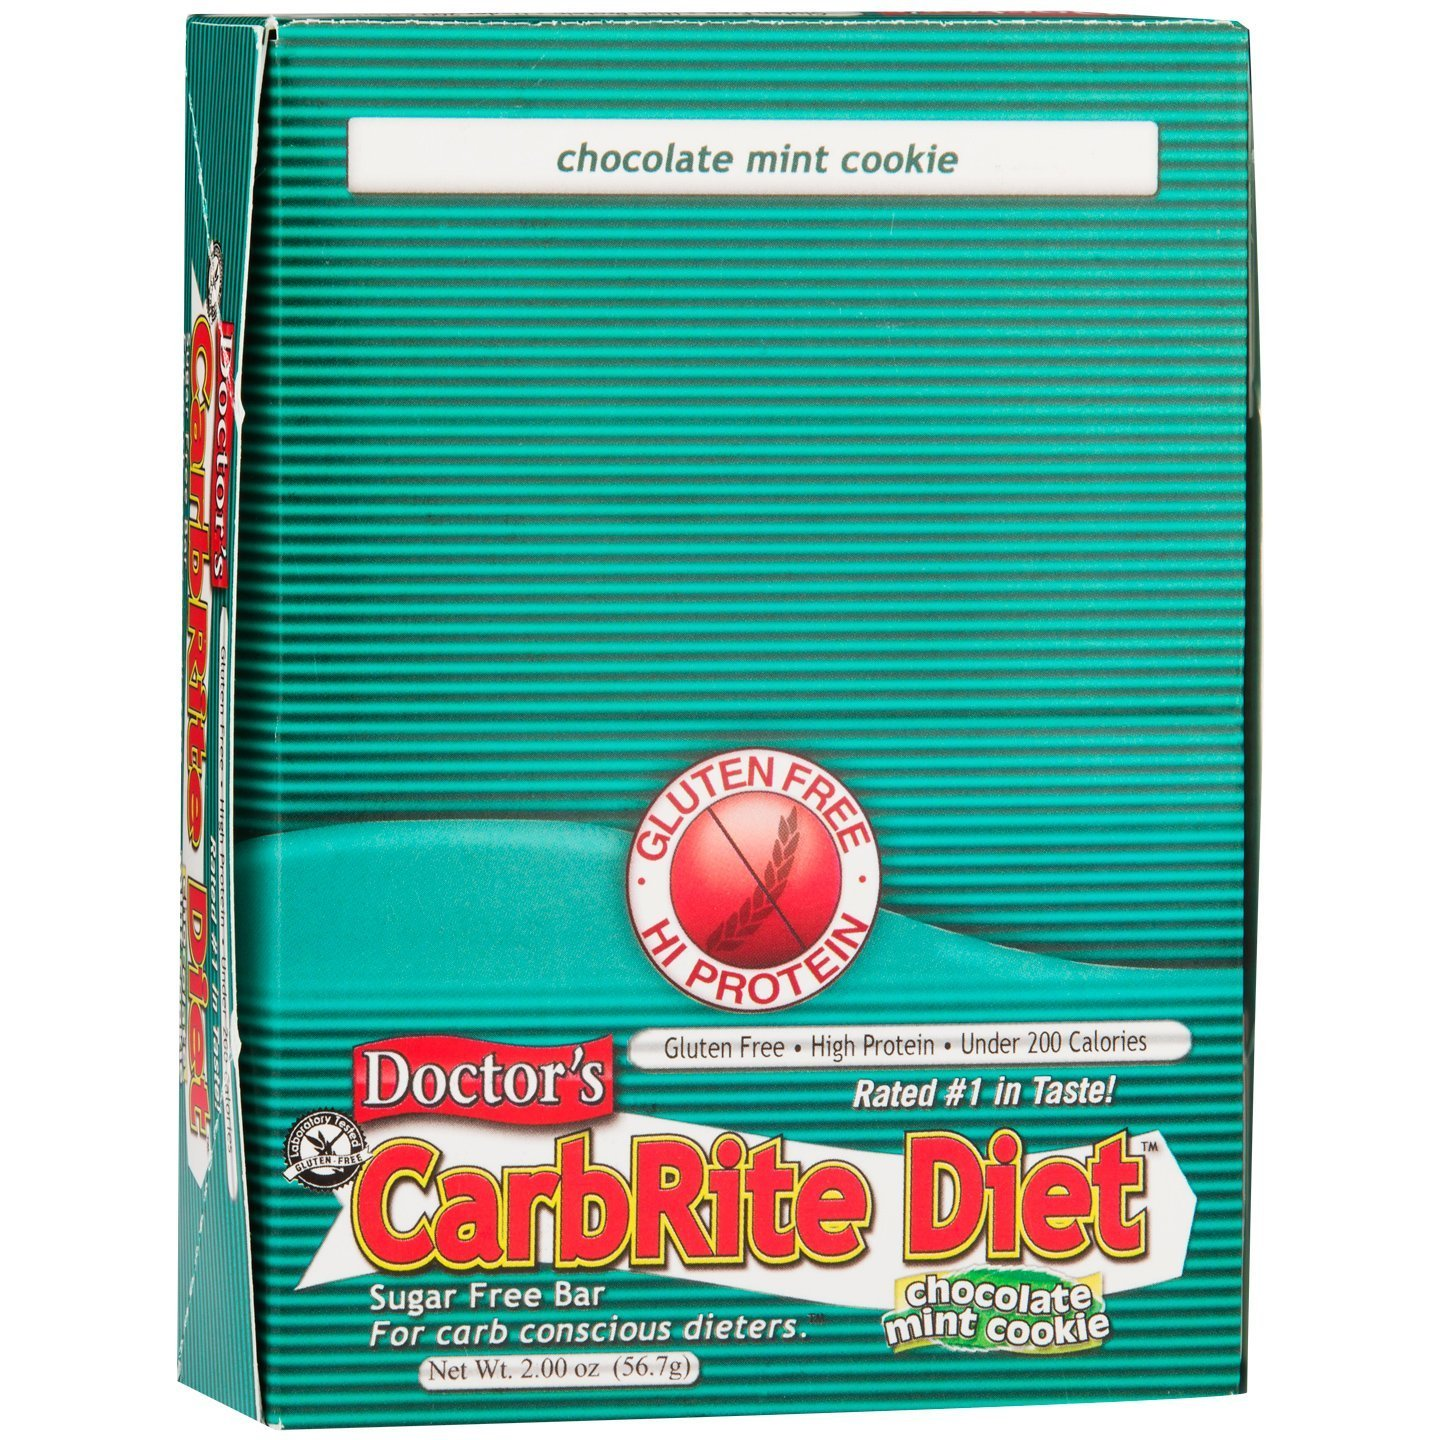 Doctor's CarbRite Diet Chocolate Mint Cookie Bars, 2 oz, 12 count by Universal Nutrition